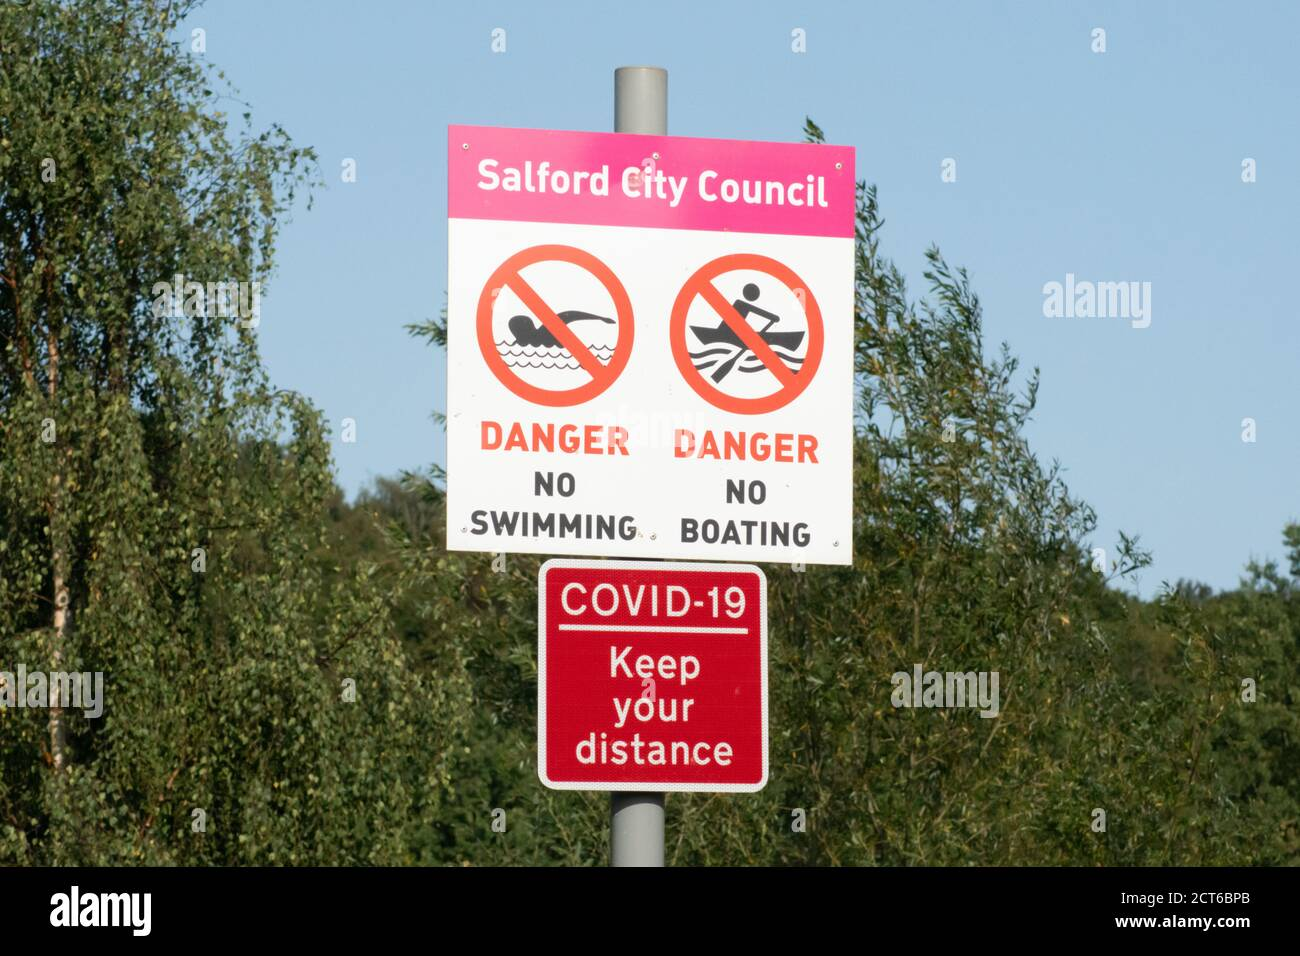 Salford City Council no swimming no boating sign, with COVID-19 keep your distance red sign, Clifton Country Park, England UK, coronavirus Stock Photo